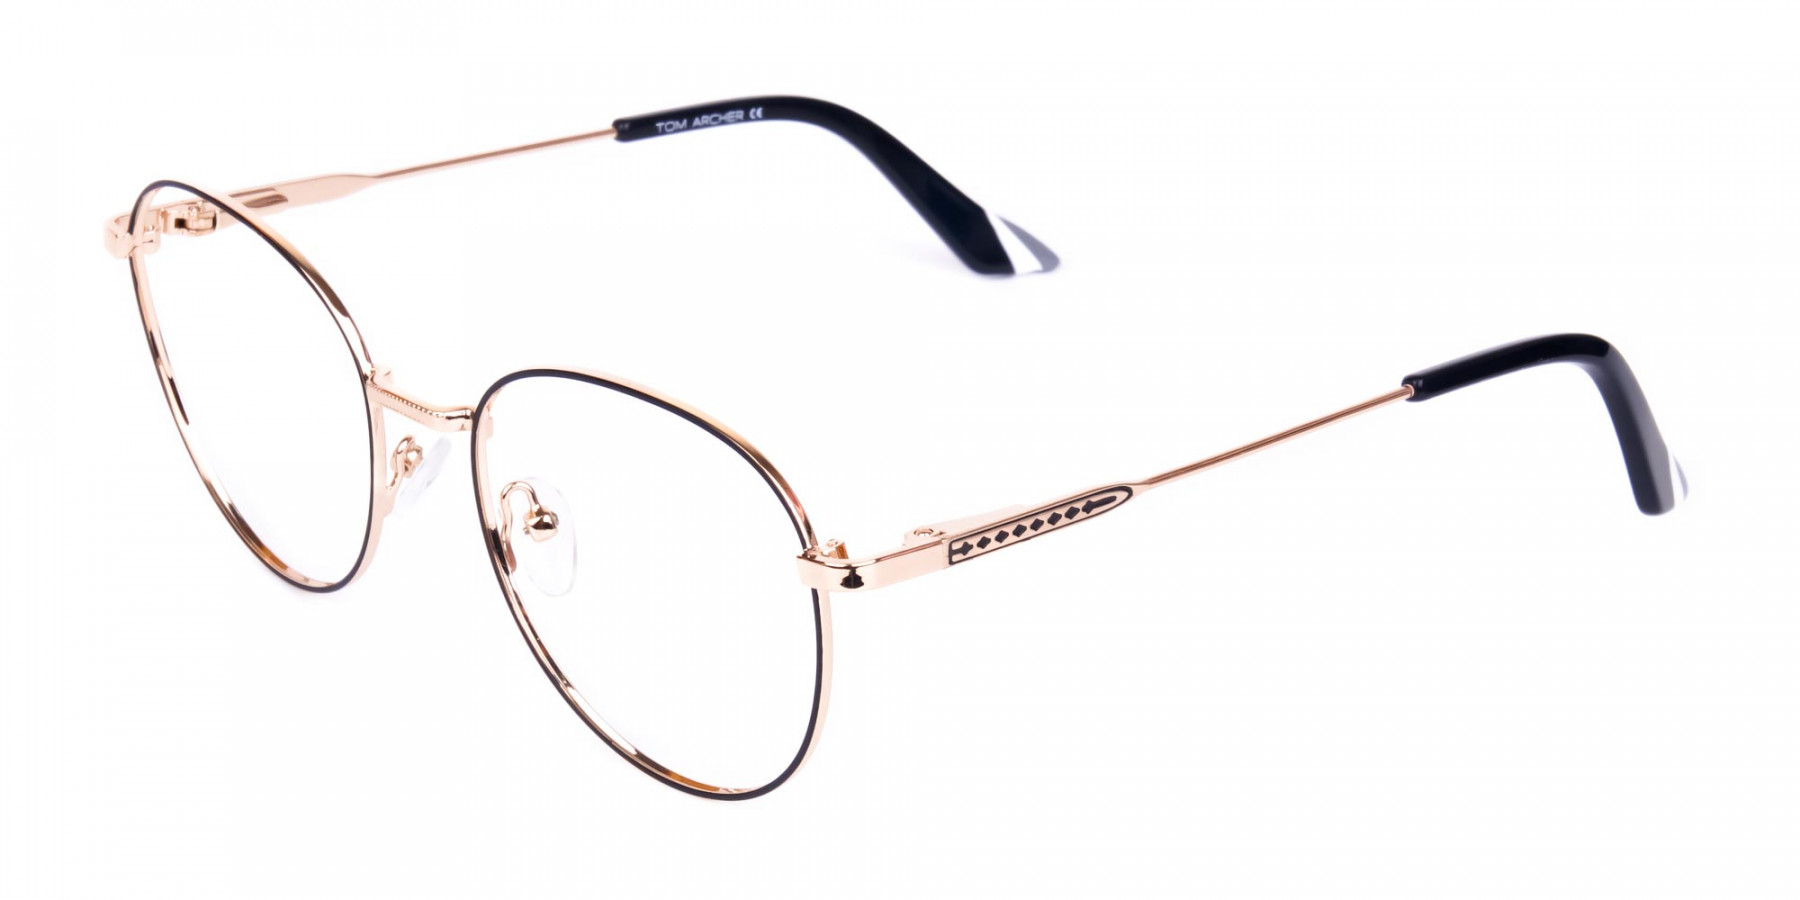 Black-and-Gold-Round-Glasses-1